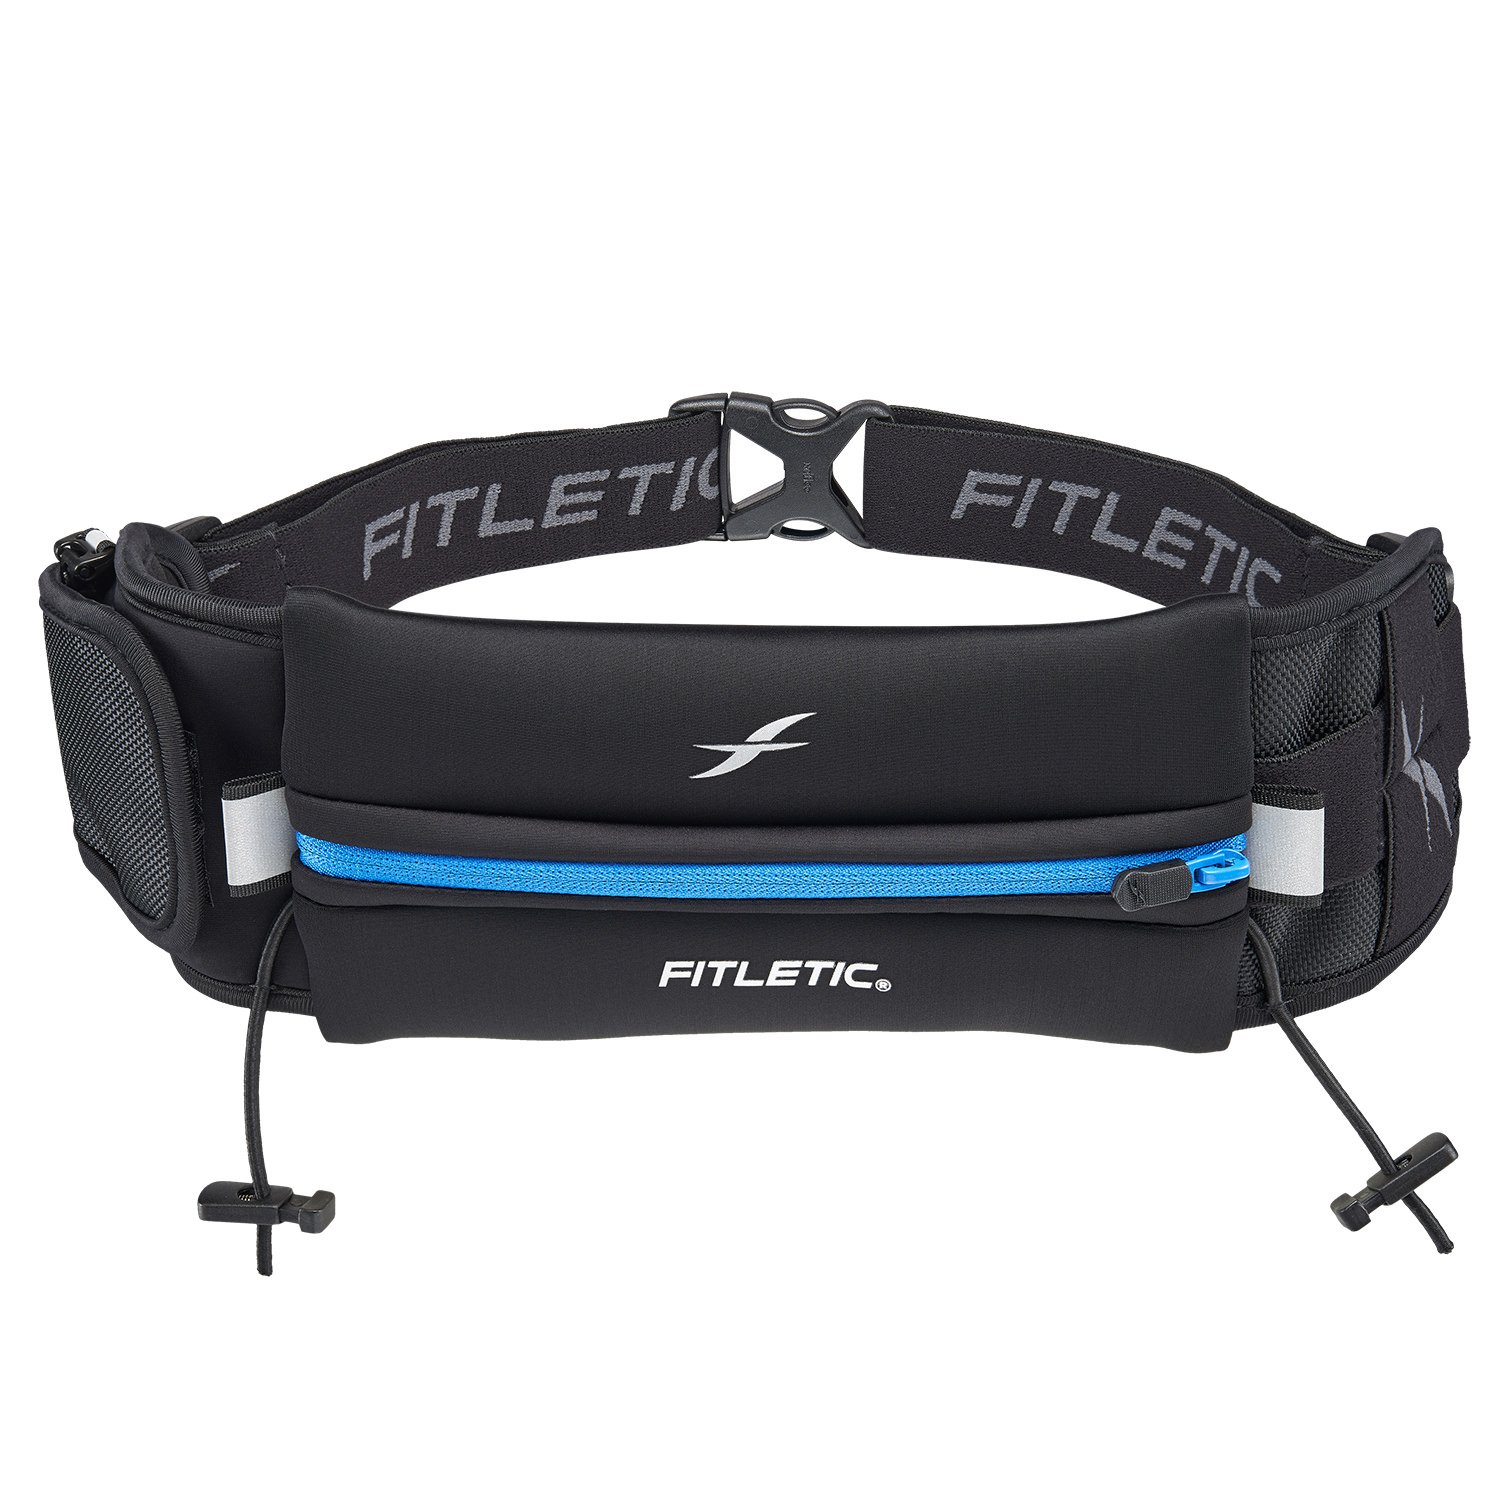 Fitletic Running Belt - Ultimate II Race Belt product image